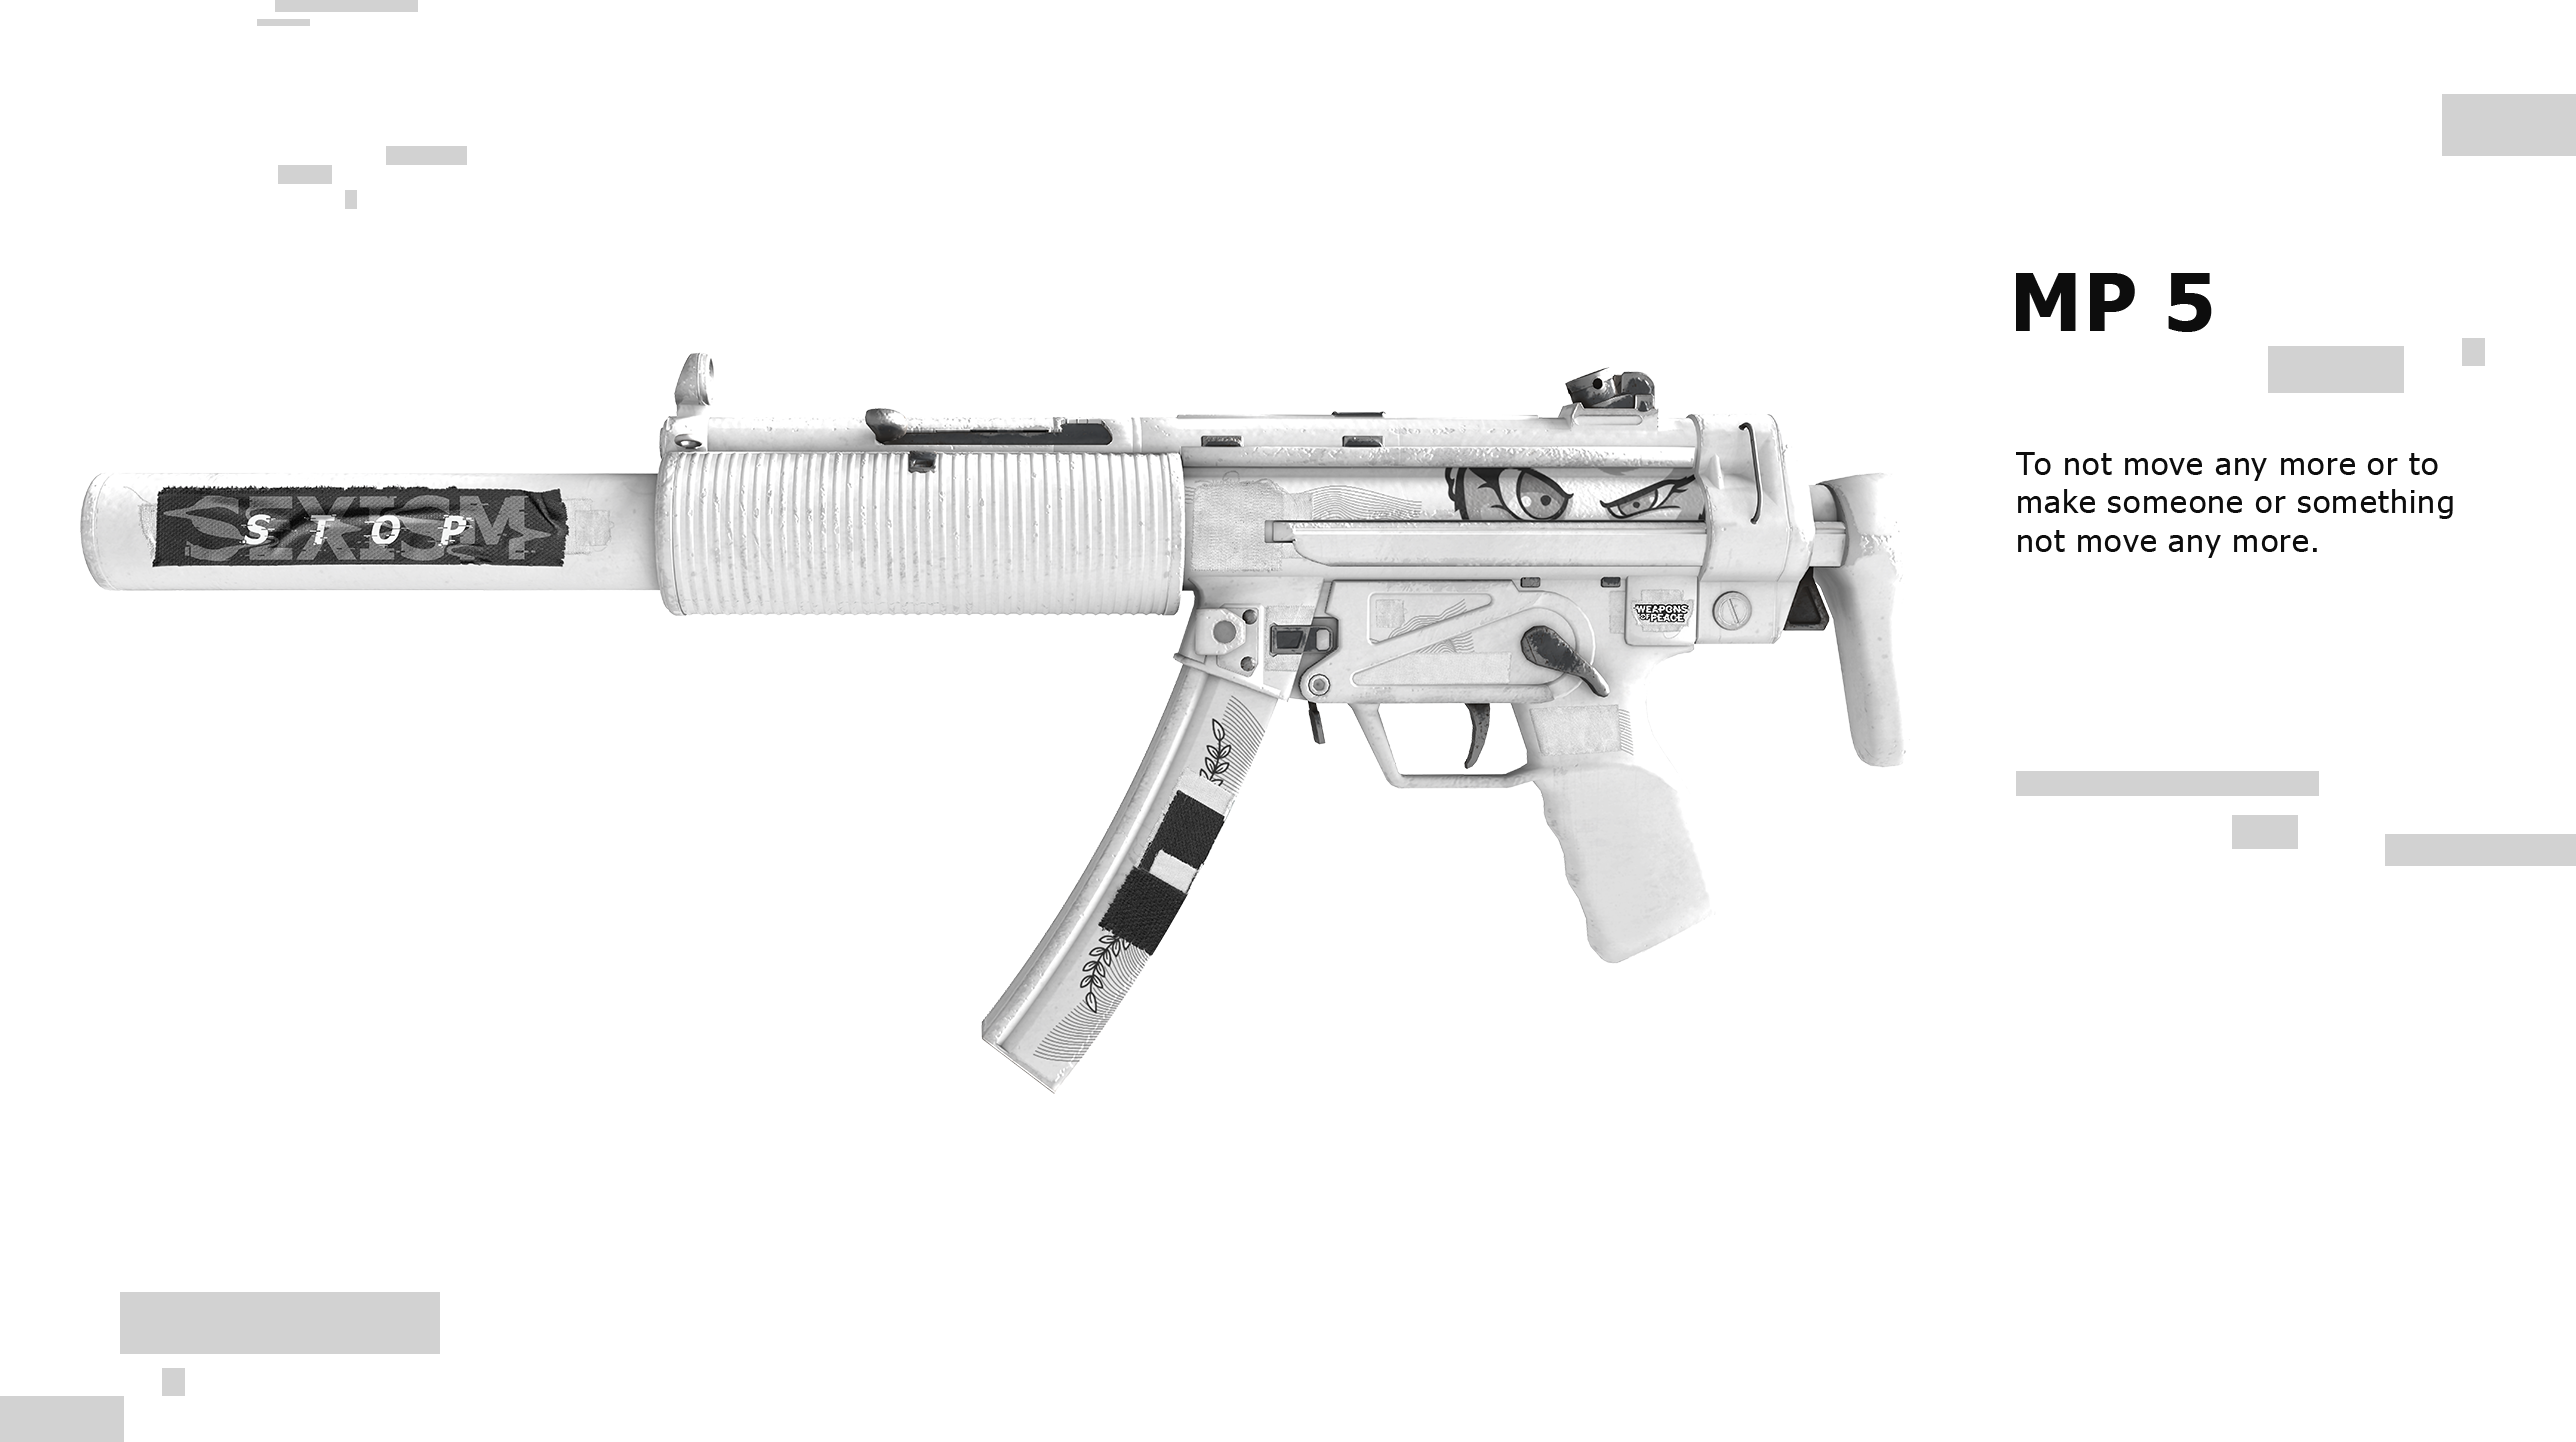 STOP-MP5